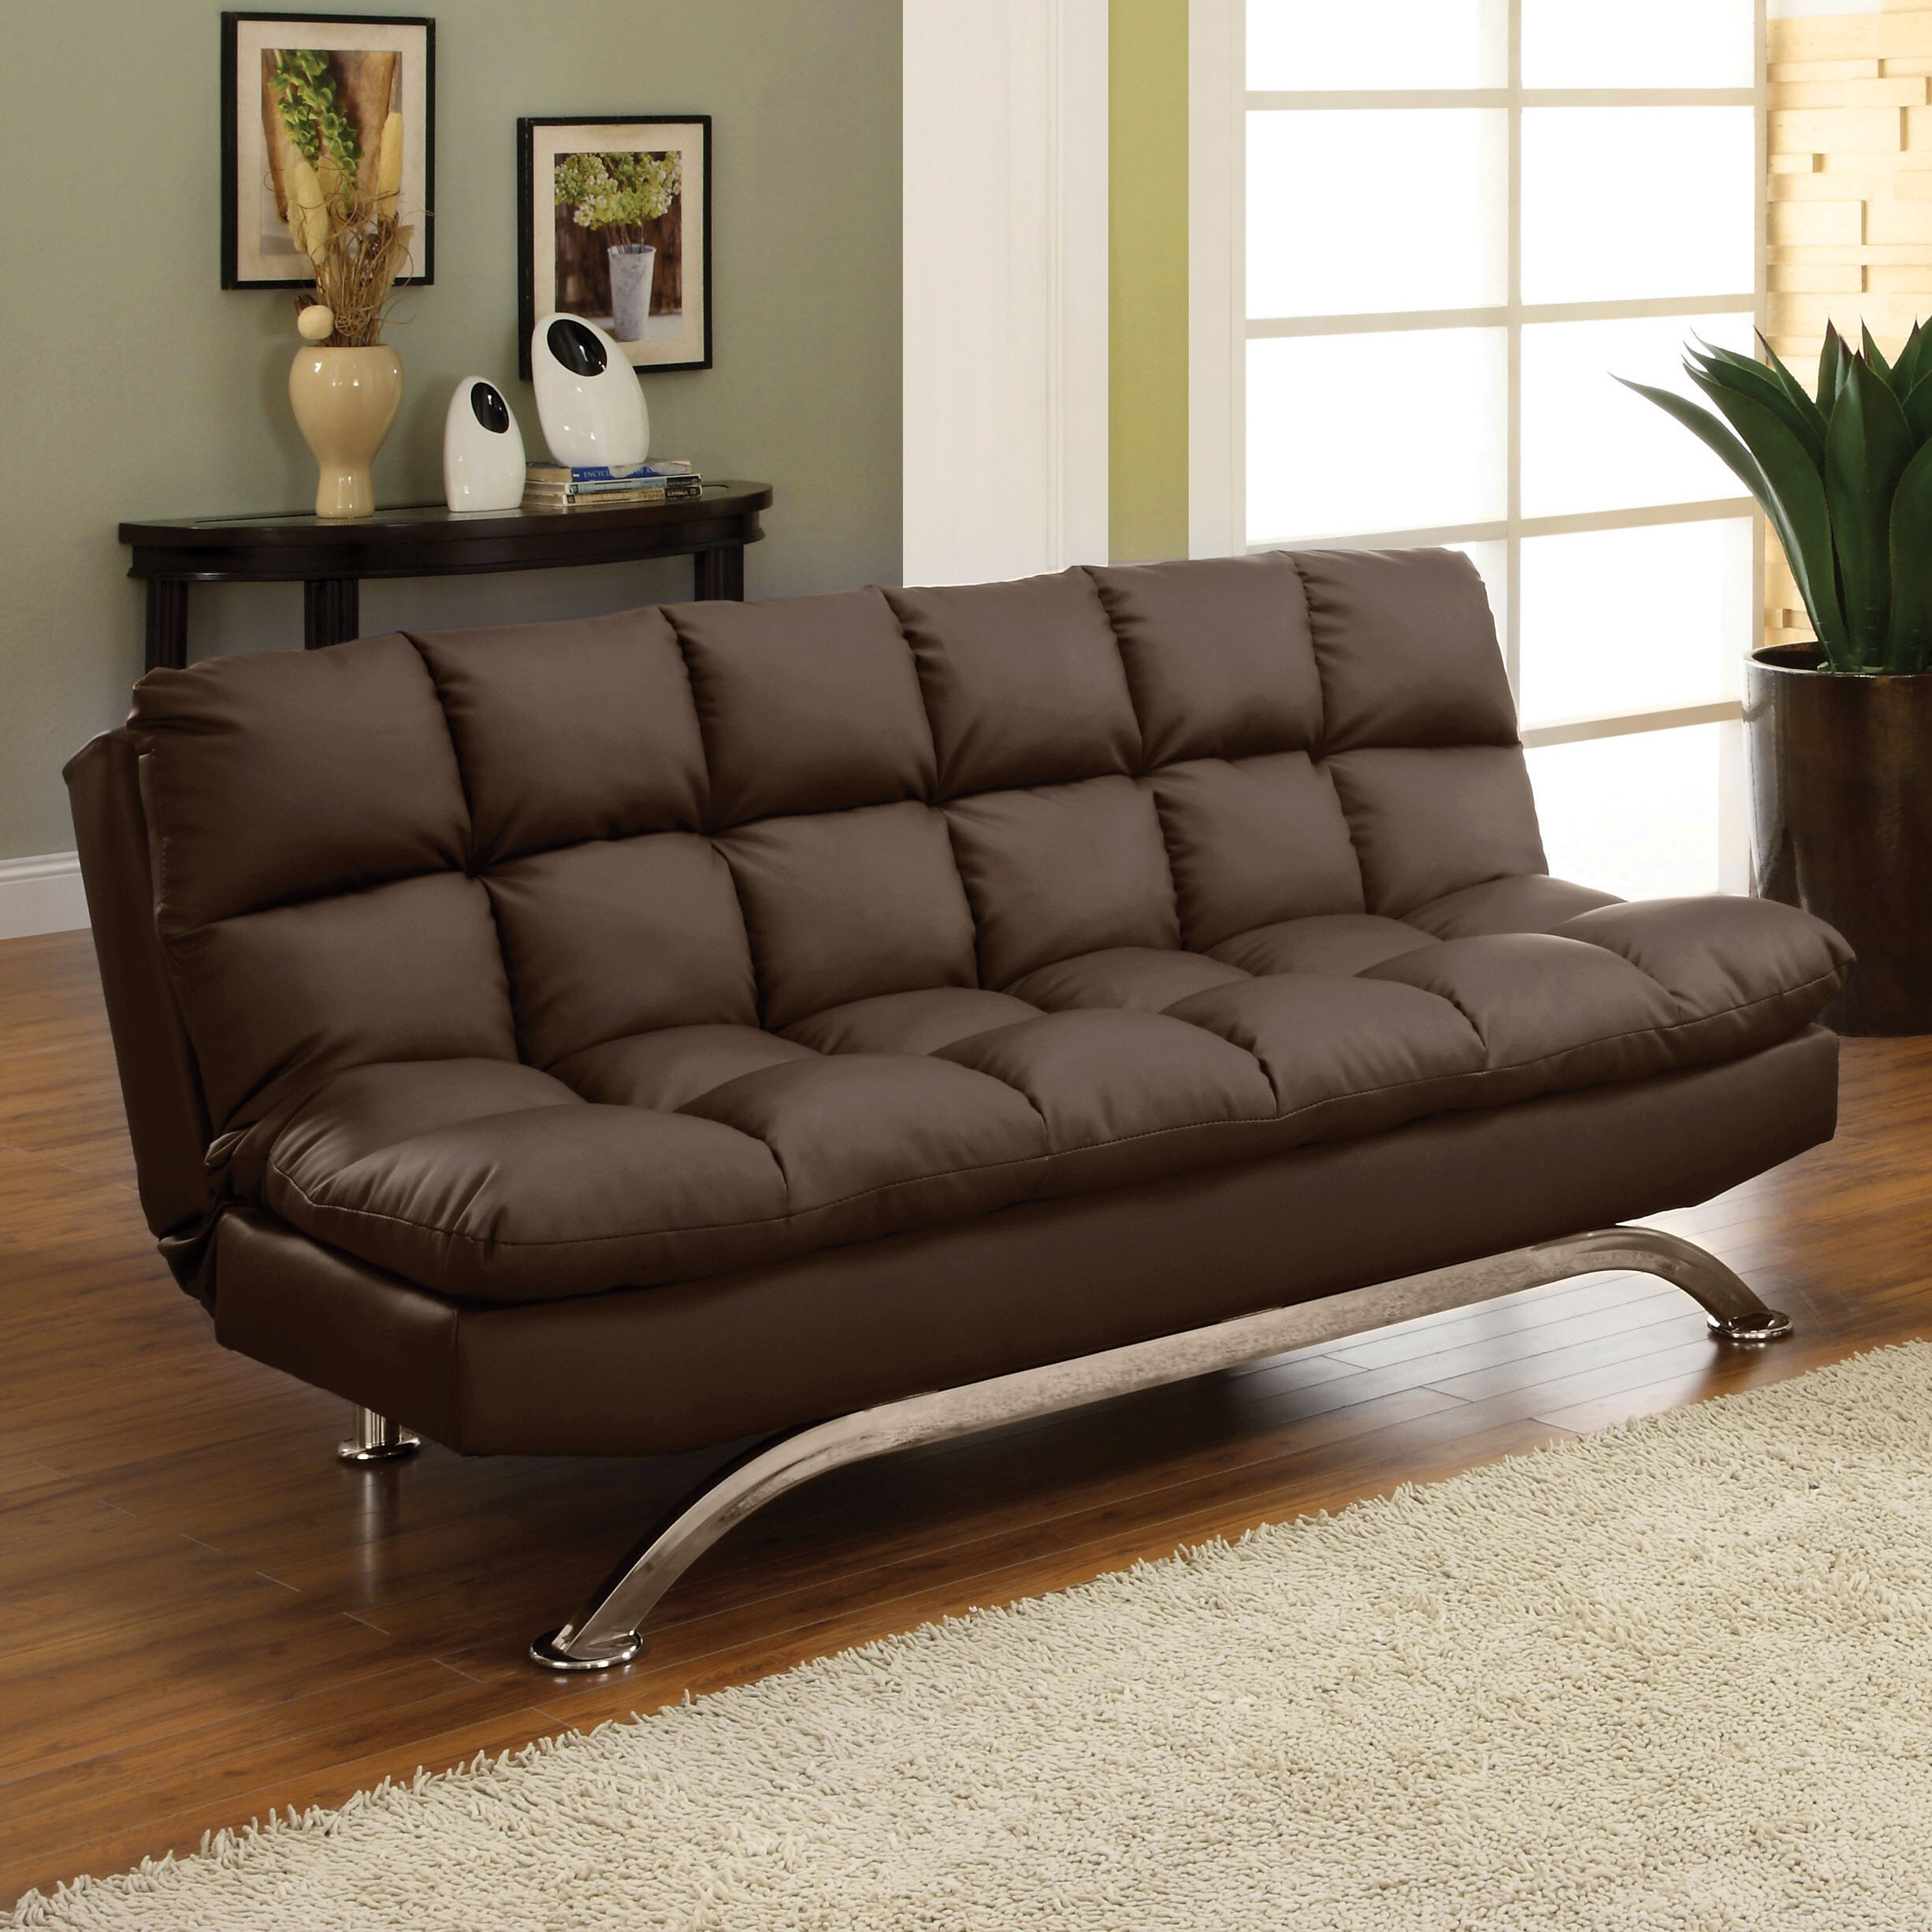 Hokku Designs Aristo Convertible Sofa & Reviews